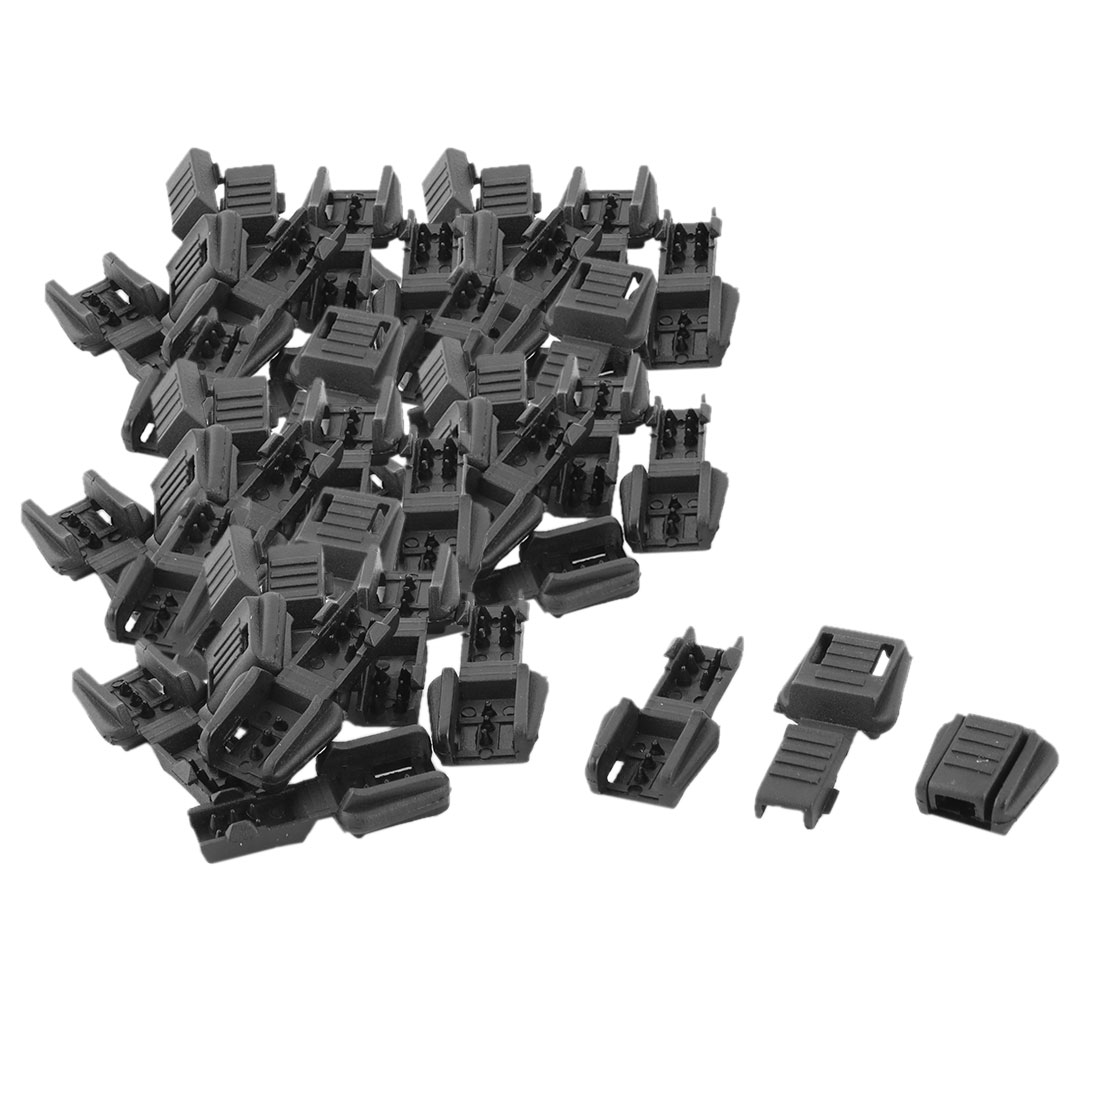 Plastic Single Hole Clothing Cord Rope Lock Clip Clamp Stopper Fastener Black 50pcs